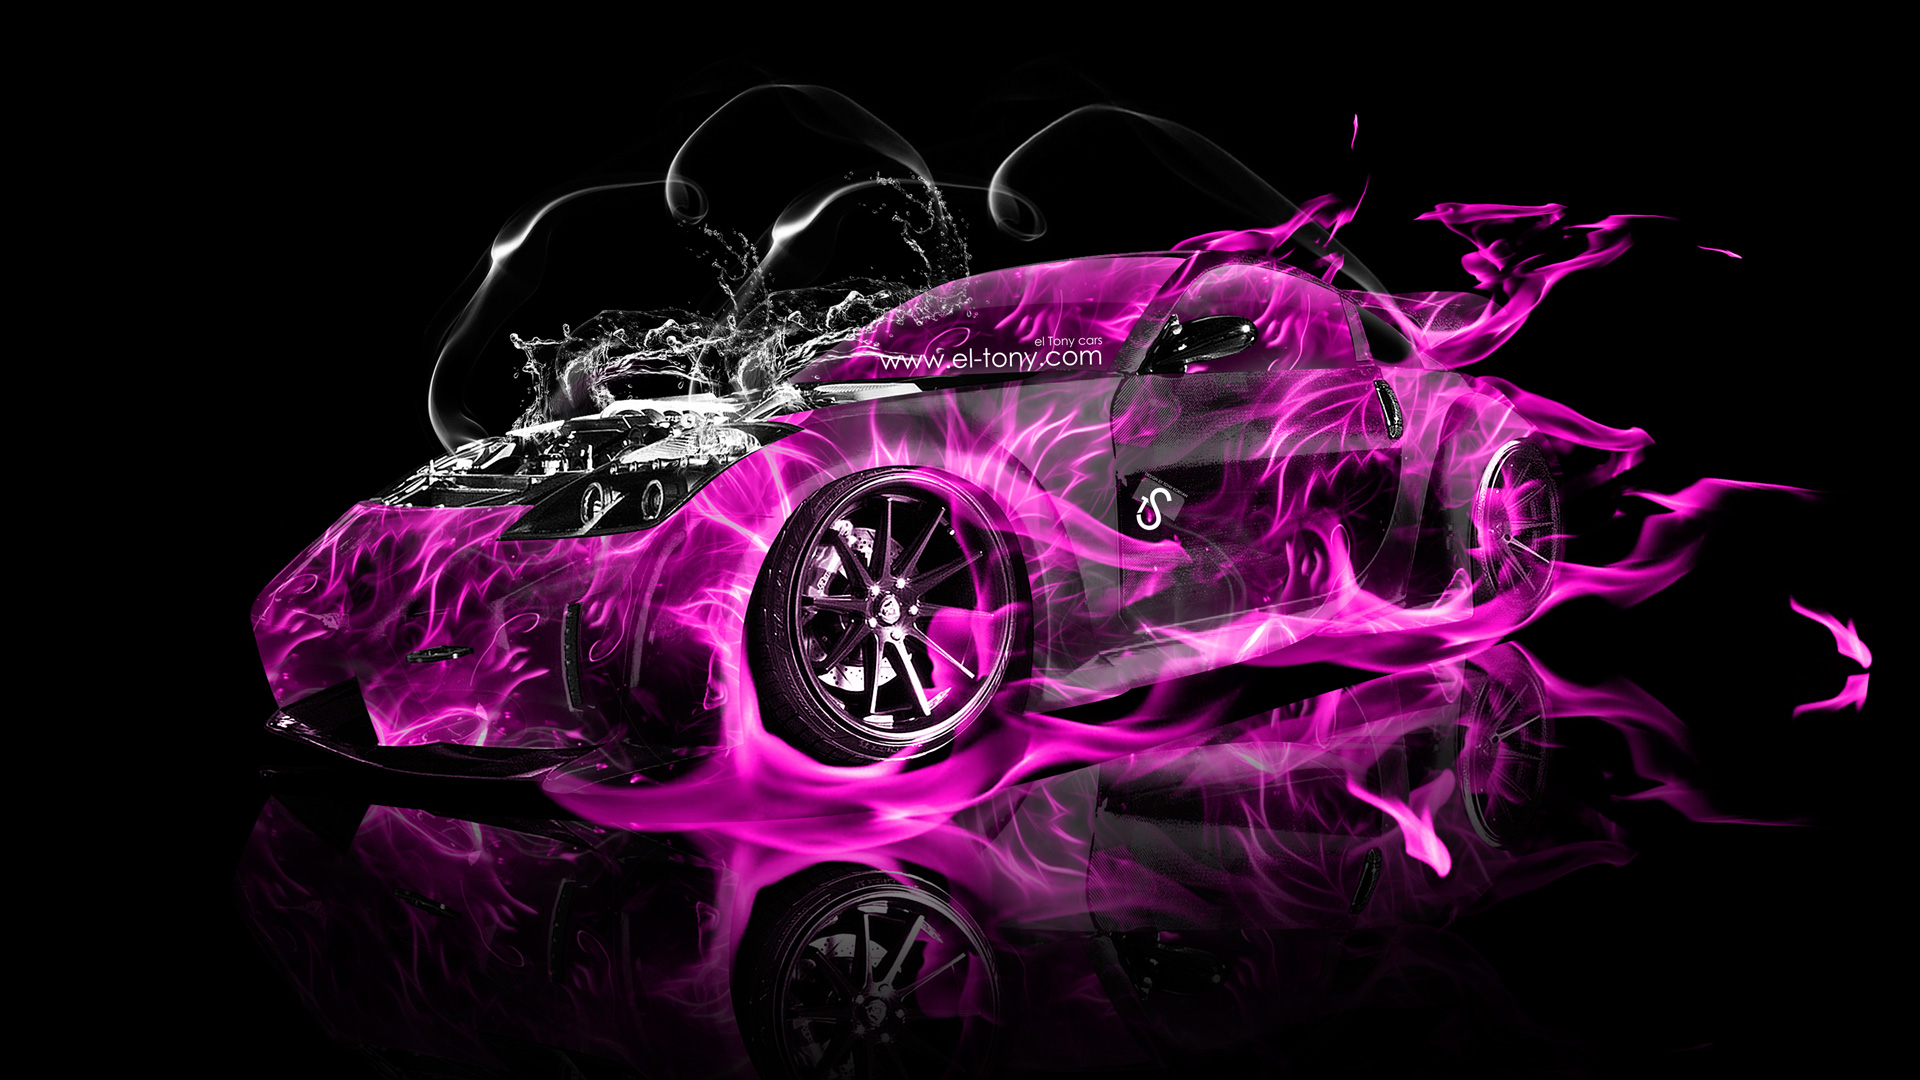 Delightful Nissan 350Z VeilSide Water Engine Pink Fire Abstract